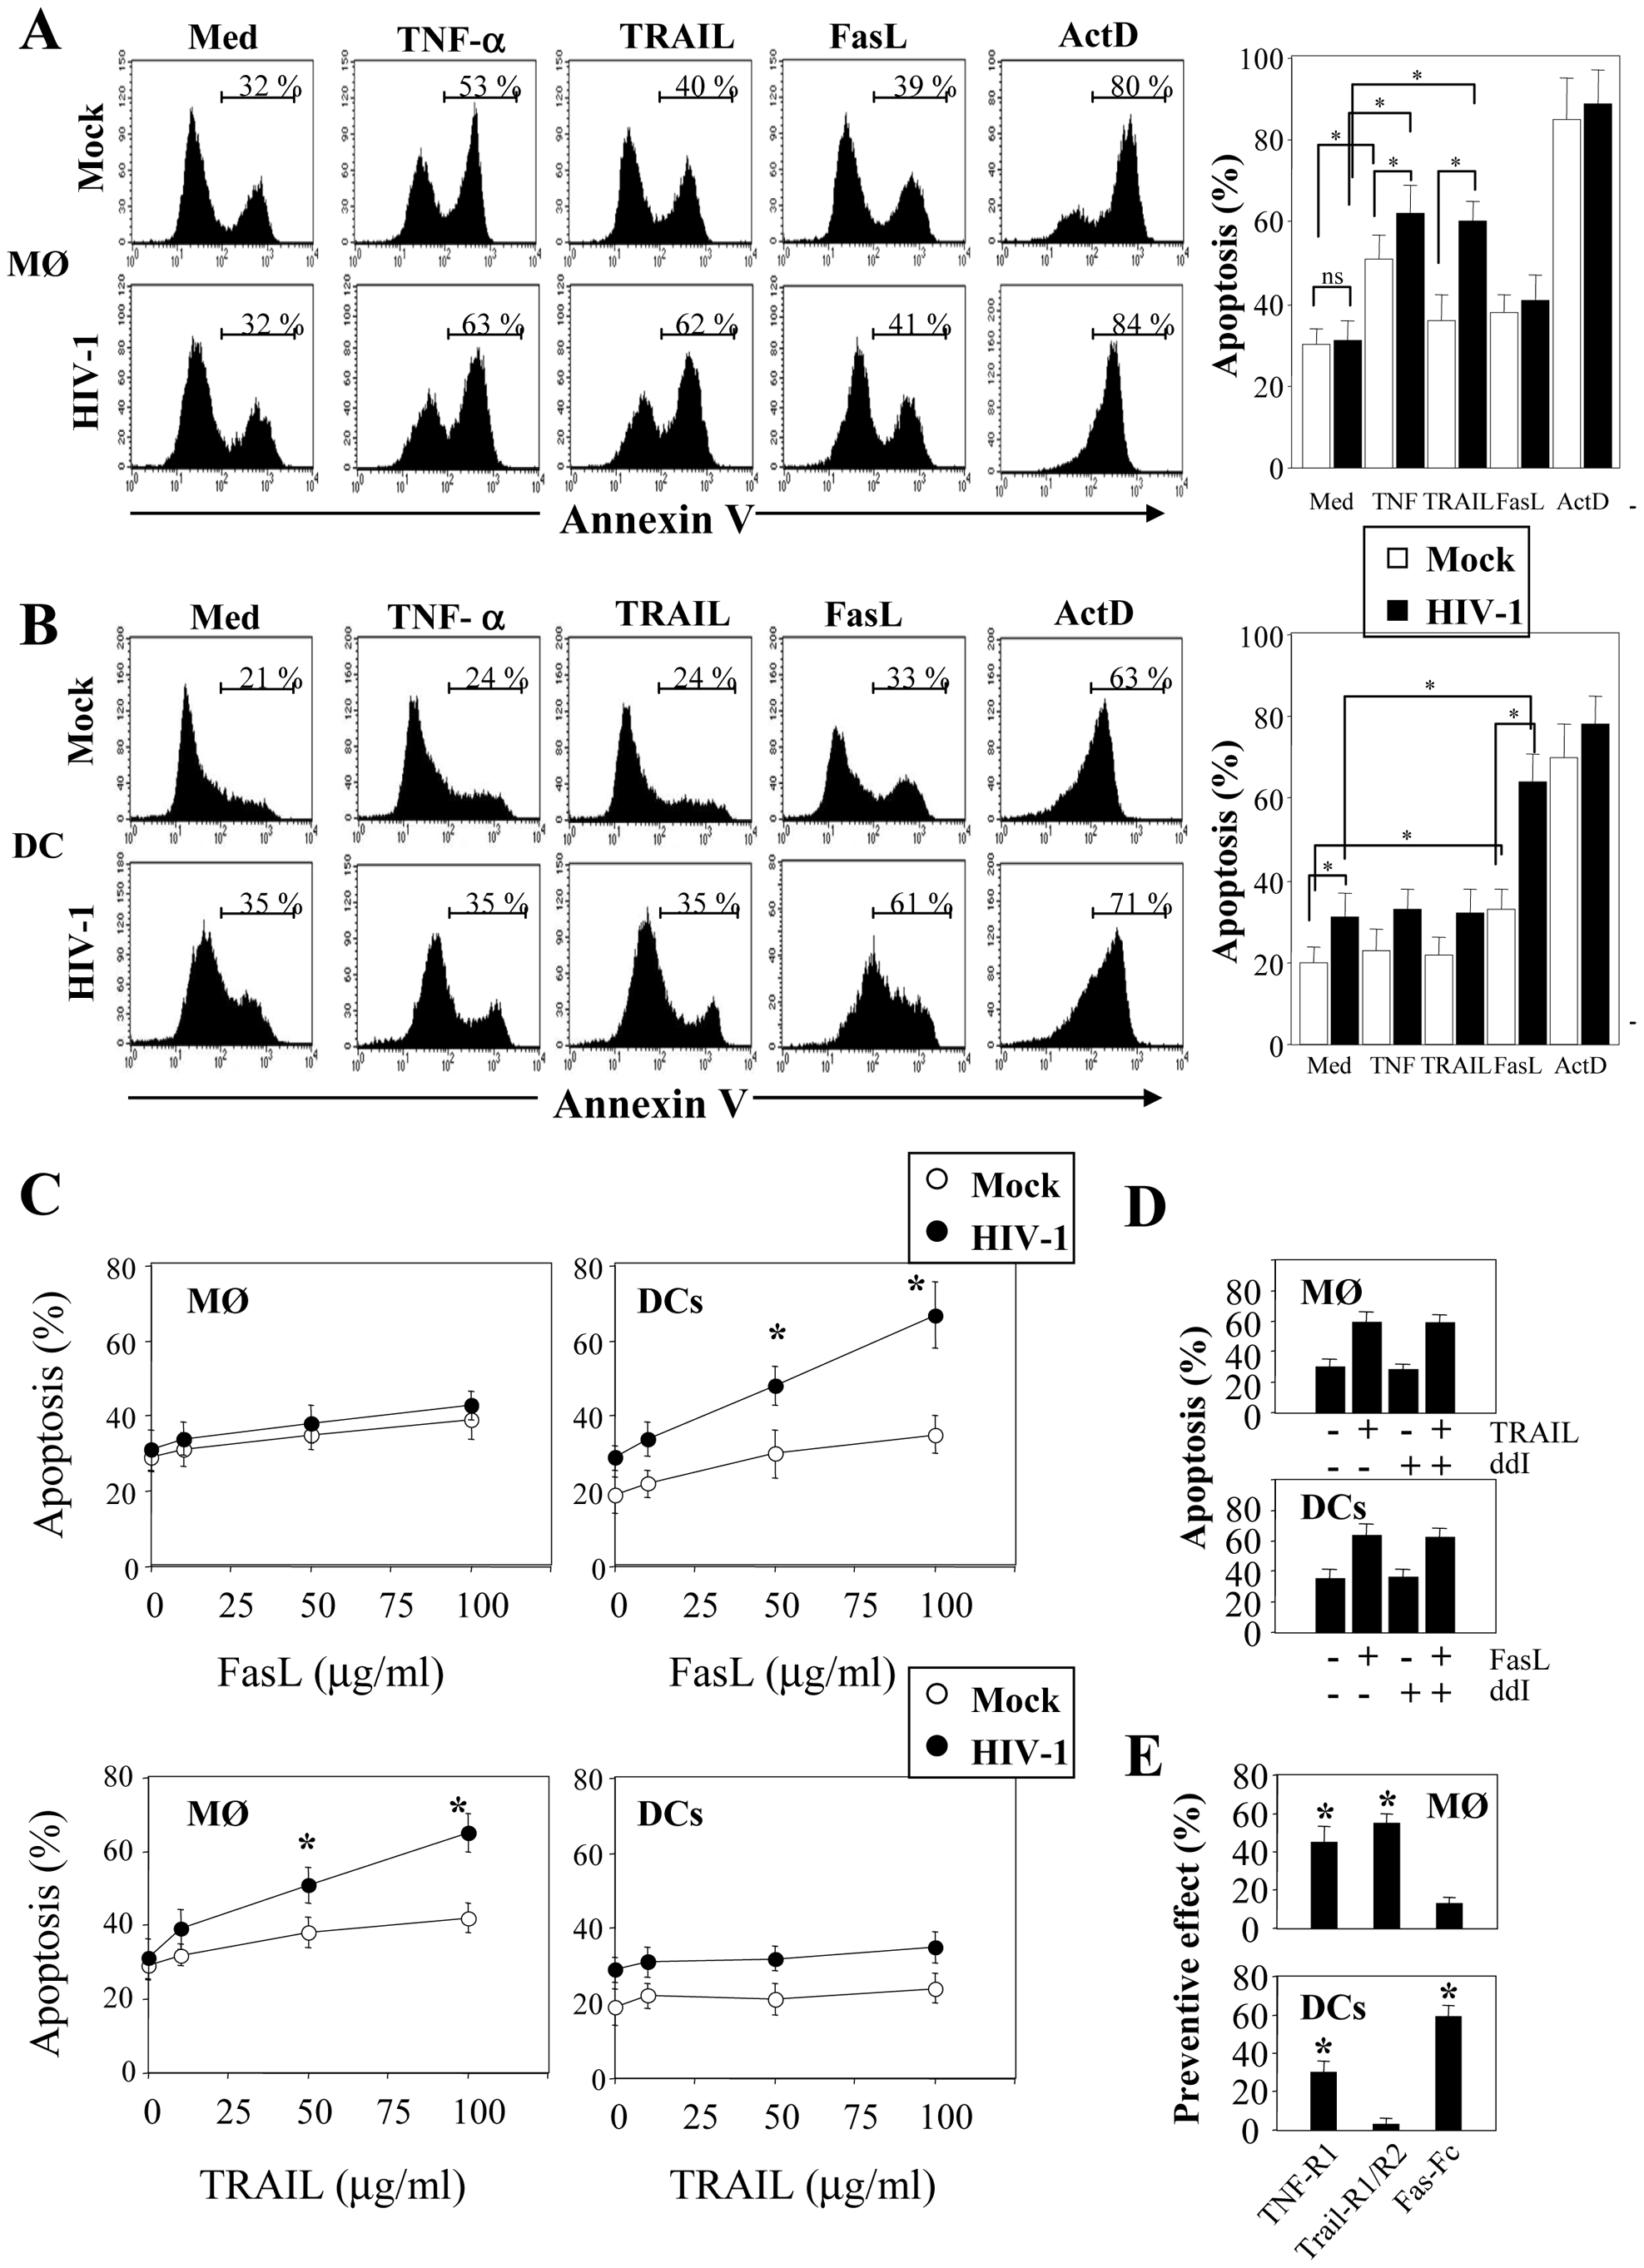 HIV-1 sensitizes monocyte-derived macrophages and monocyte-derived DCs for Death receptor ligands.